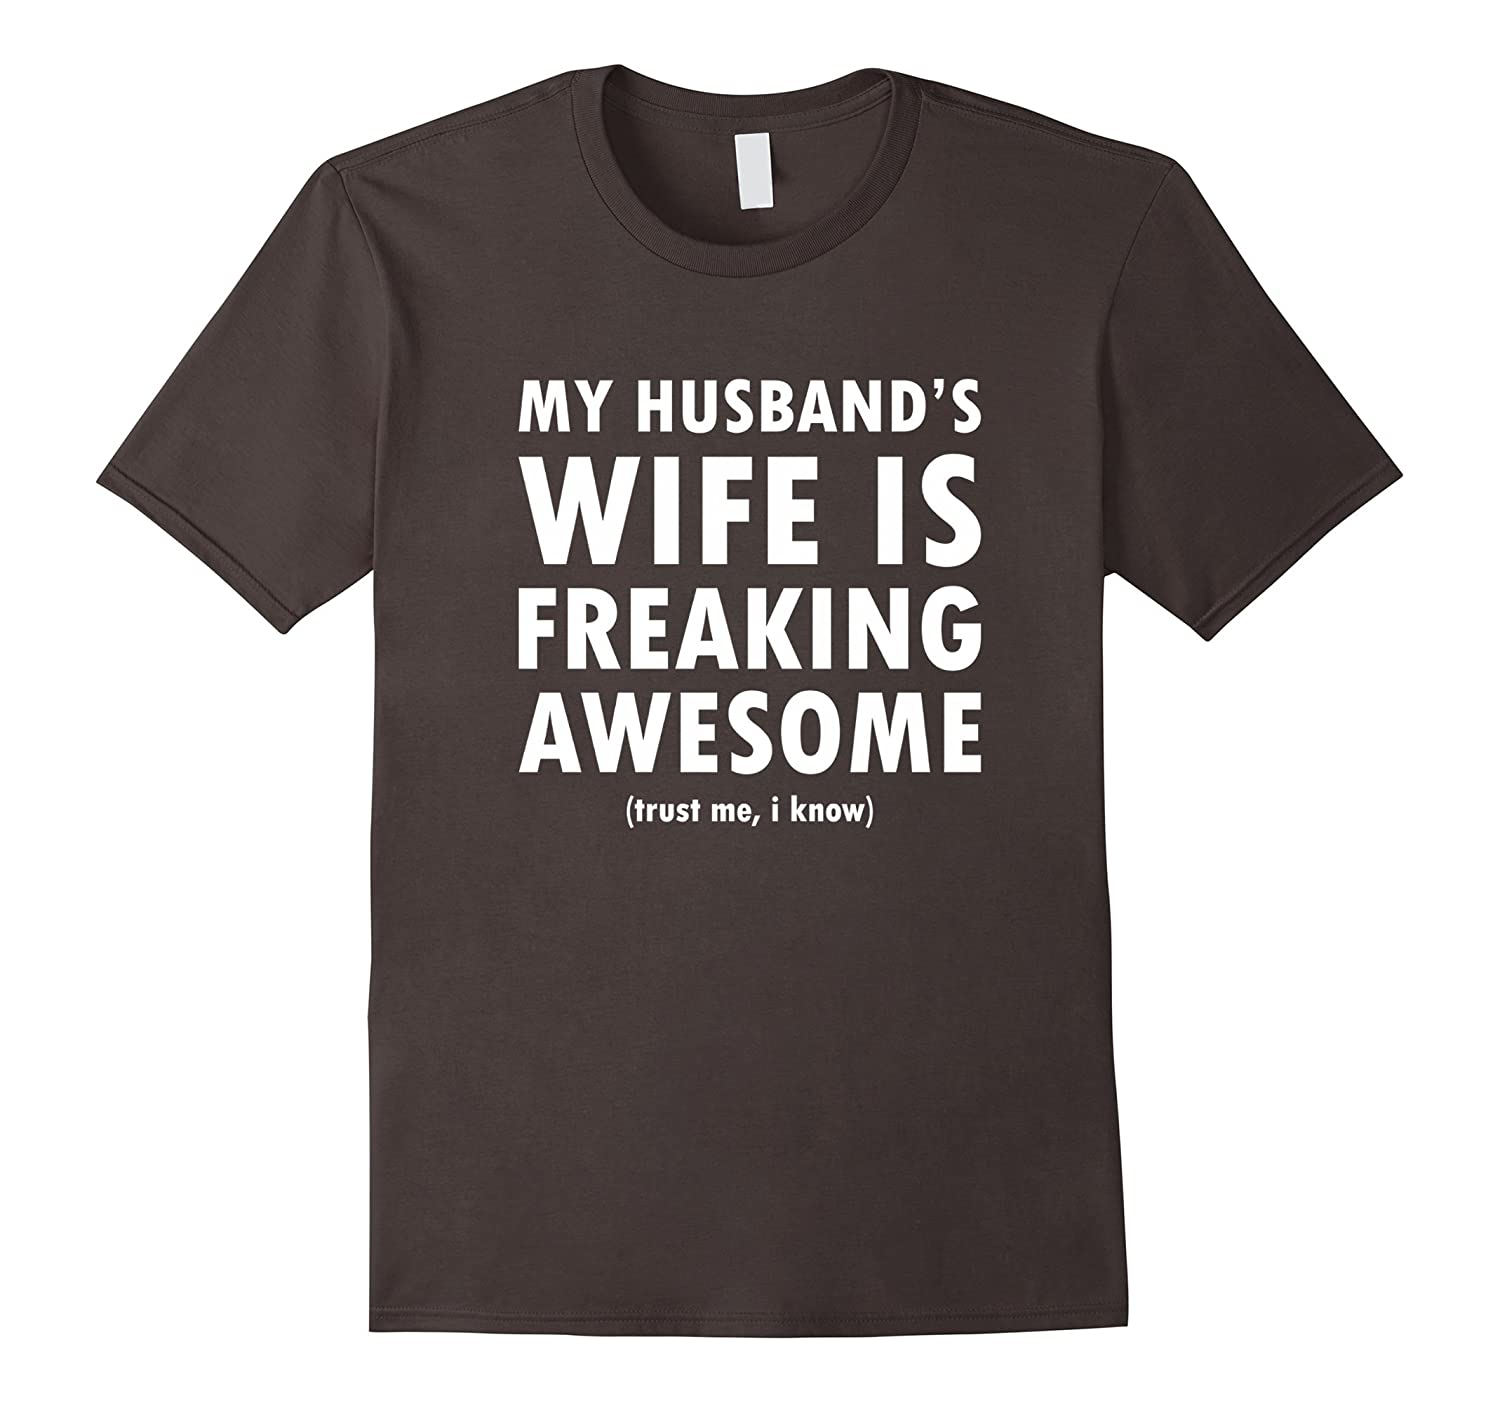 aa64f213 My Husbands Wife is Freaking Awesome – Funny T-Shirt – Hntee.com